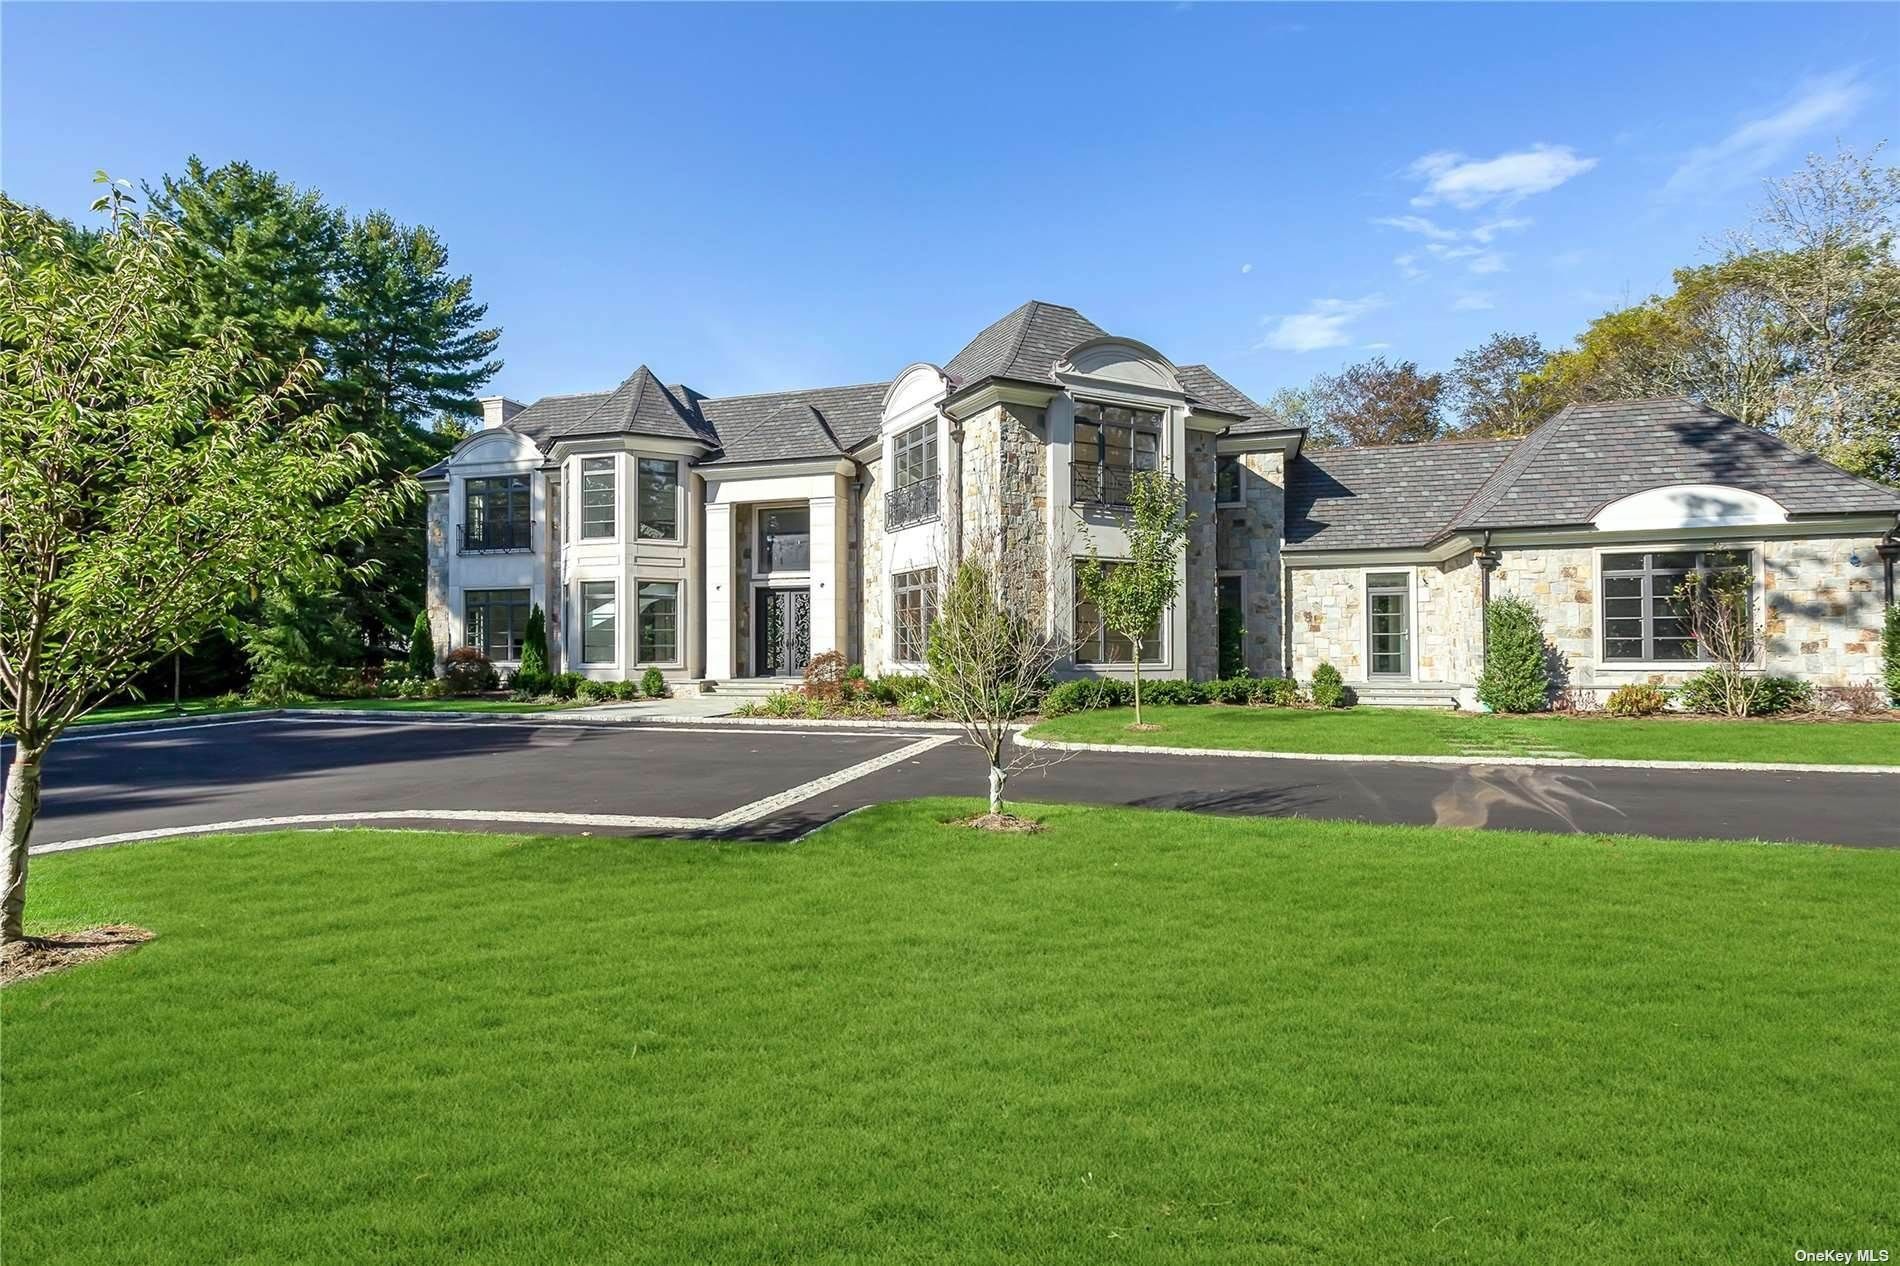 Residential for Sale at 7 Surrey Lane Old Westbury, New York 11568 United States